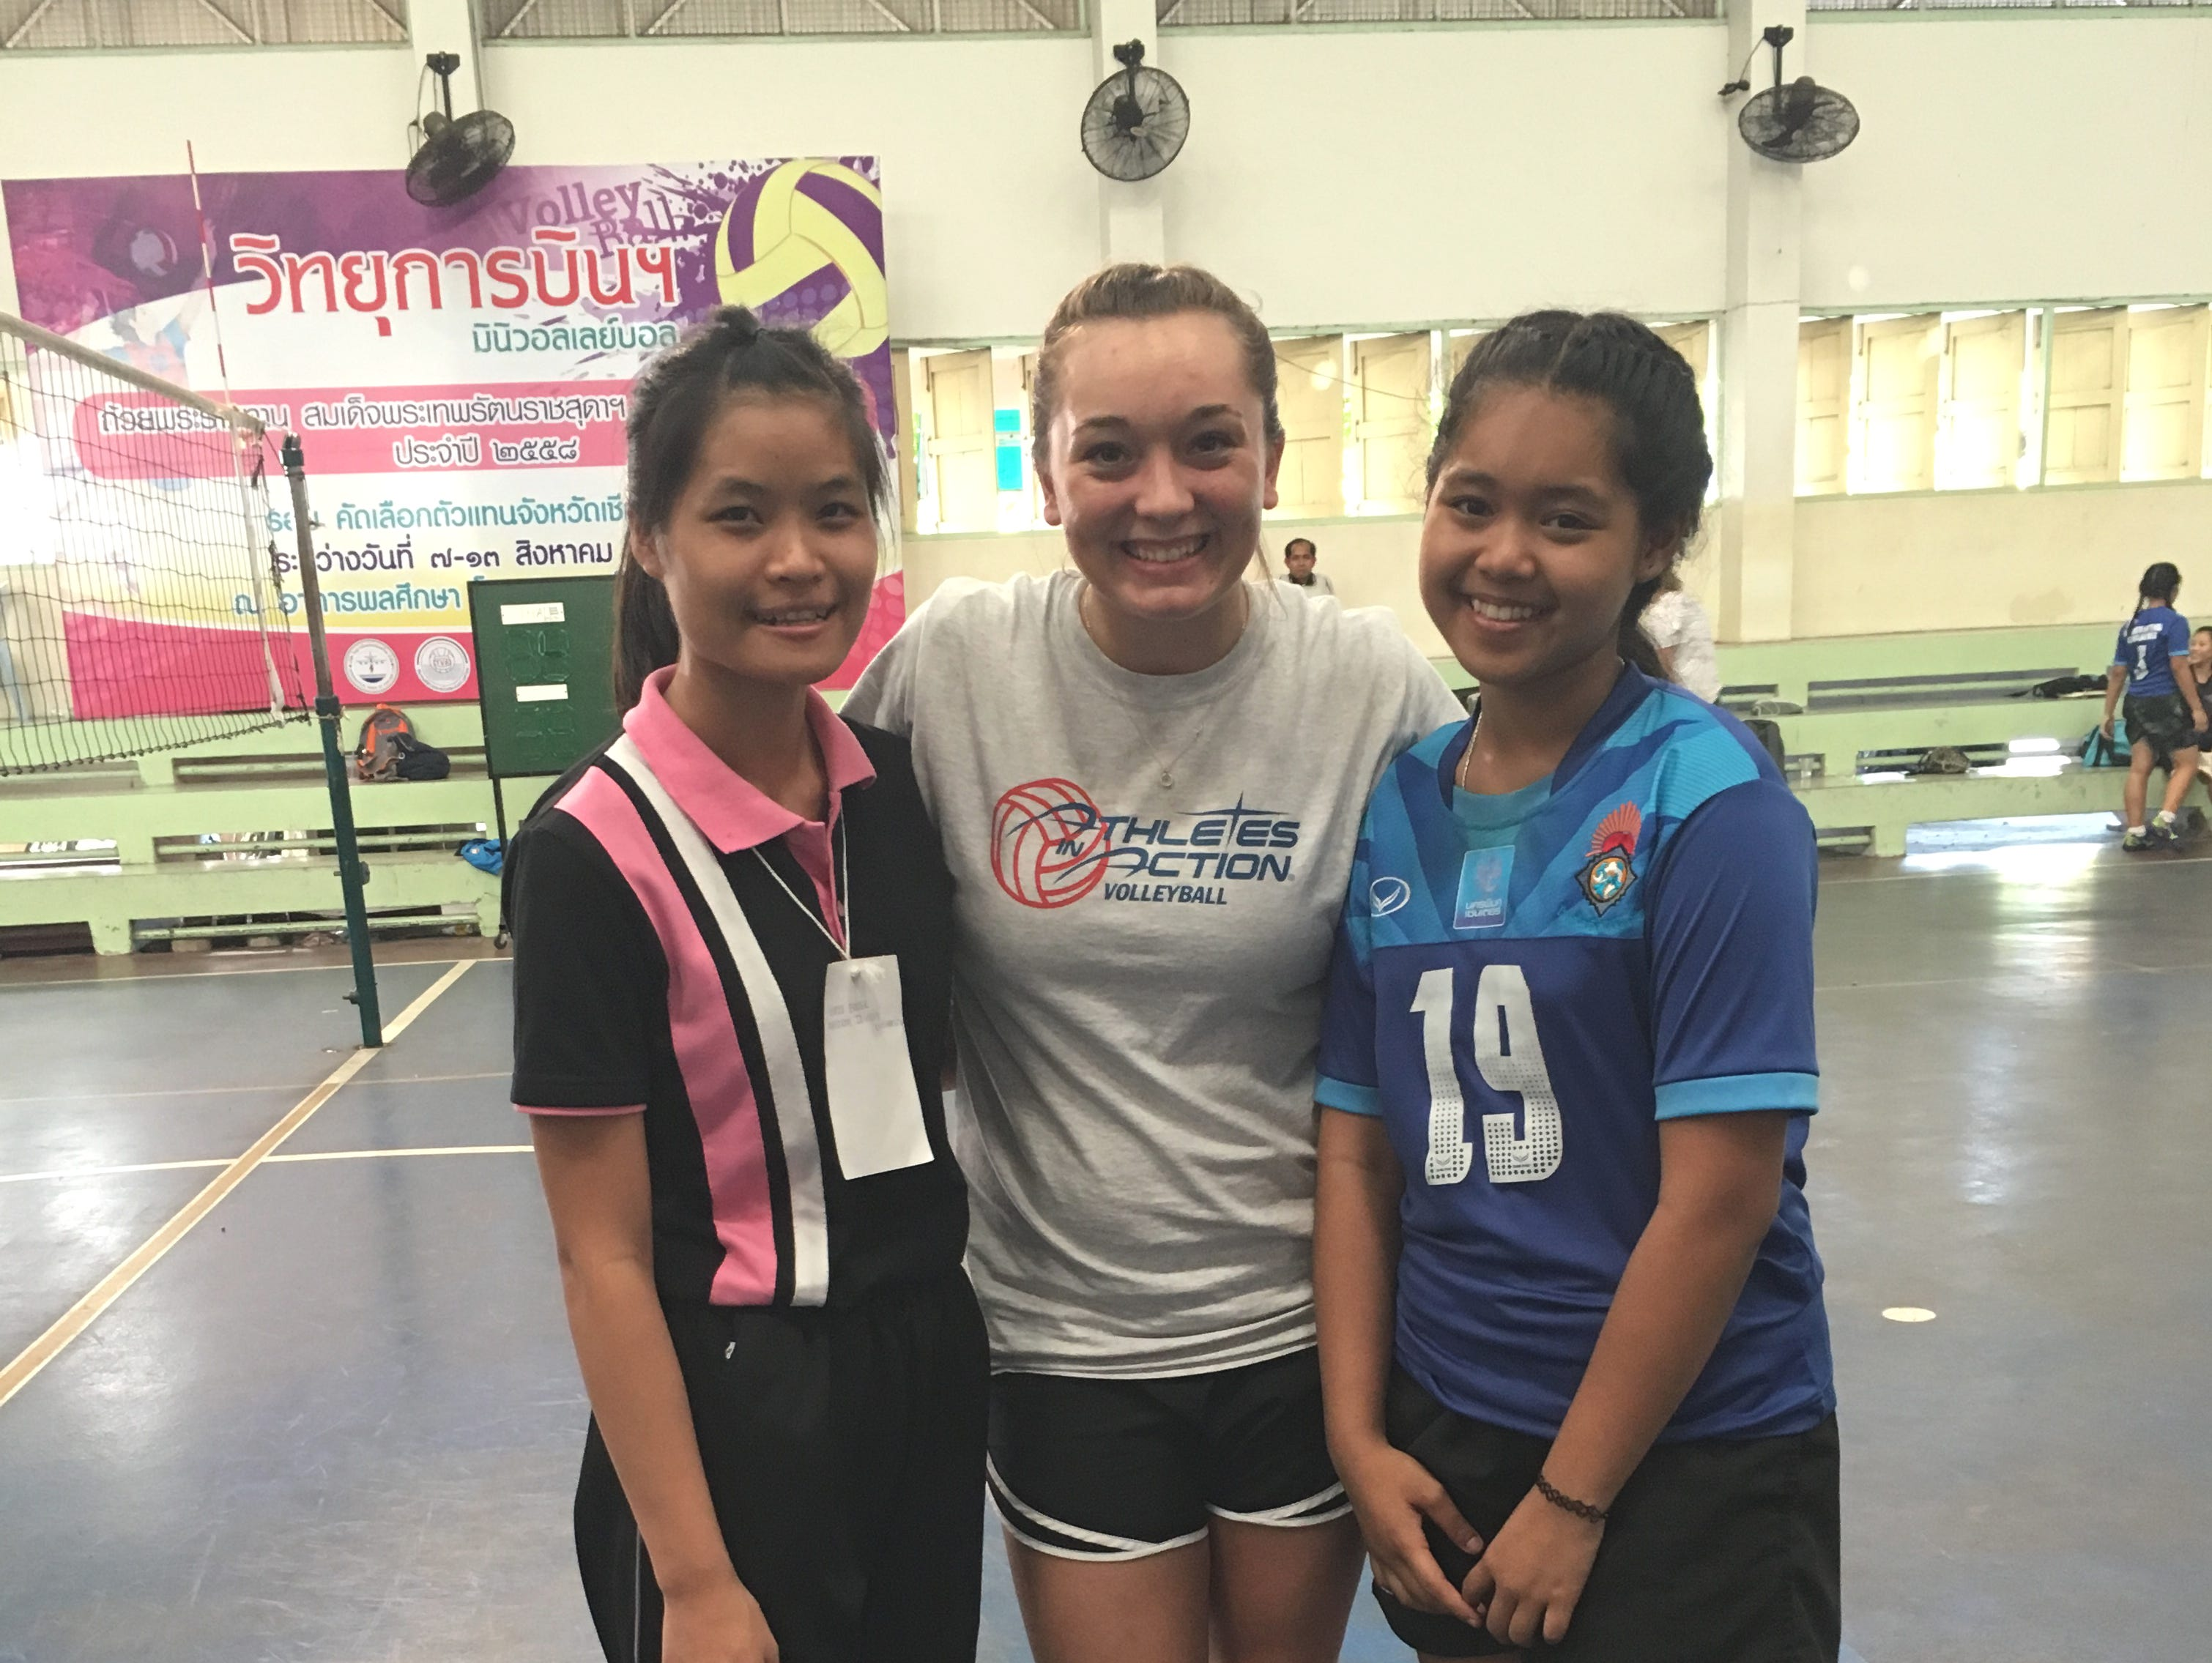 Willard's Makenzie Bouse (center) poses for a photo with two volleyball players from Thailand whom Bouse mentored during a trip to Thailand with Athletes in Action.